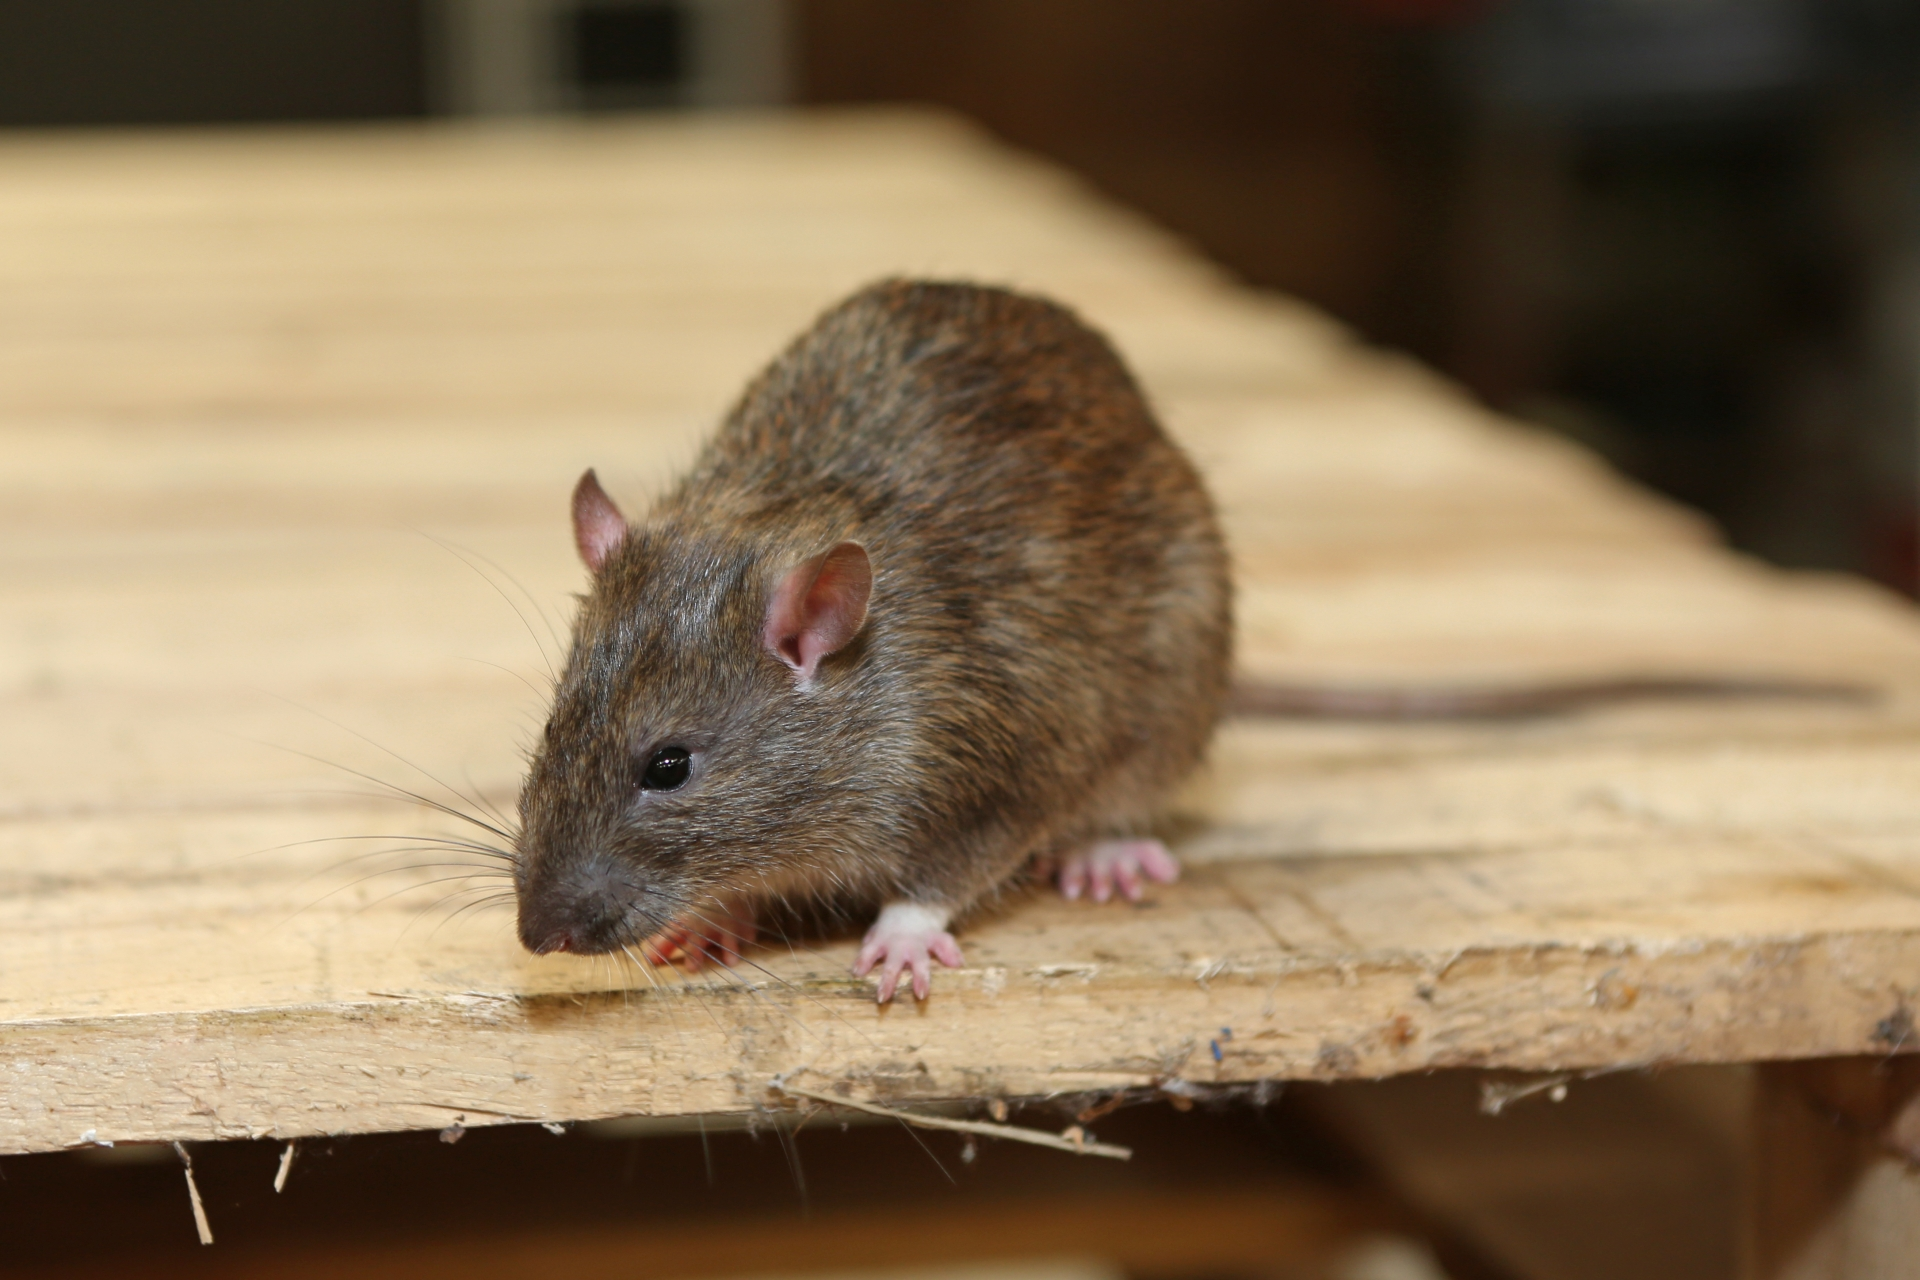 Rat Control, Pest Control in West Drayton, Harmondsworth, Sipson, UB7. Call Now 020 8166 9746